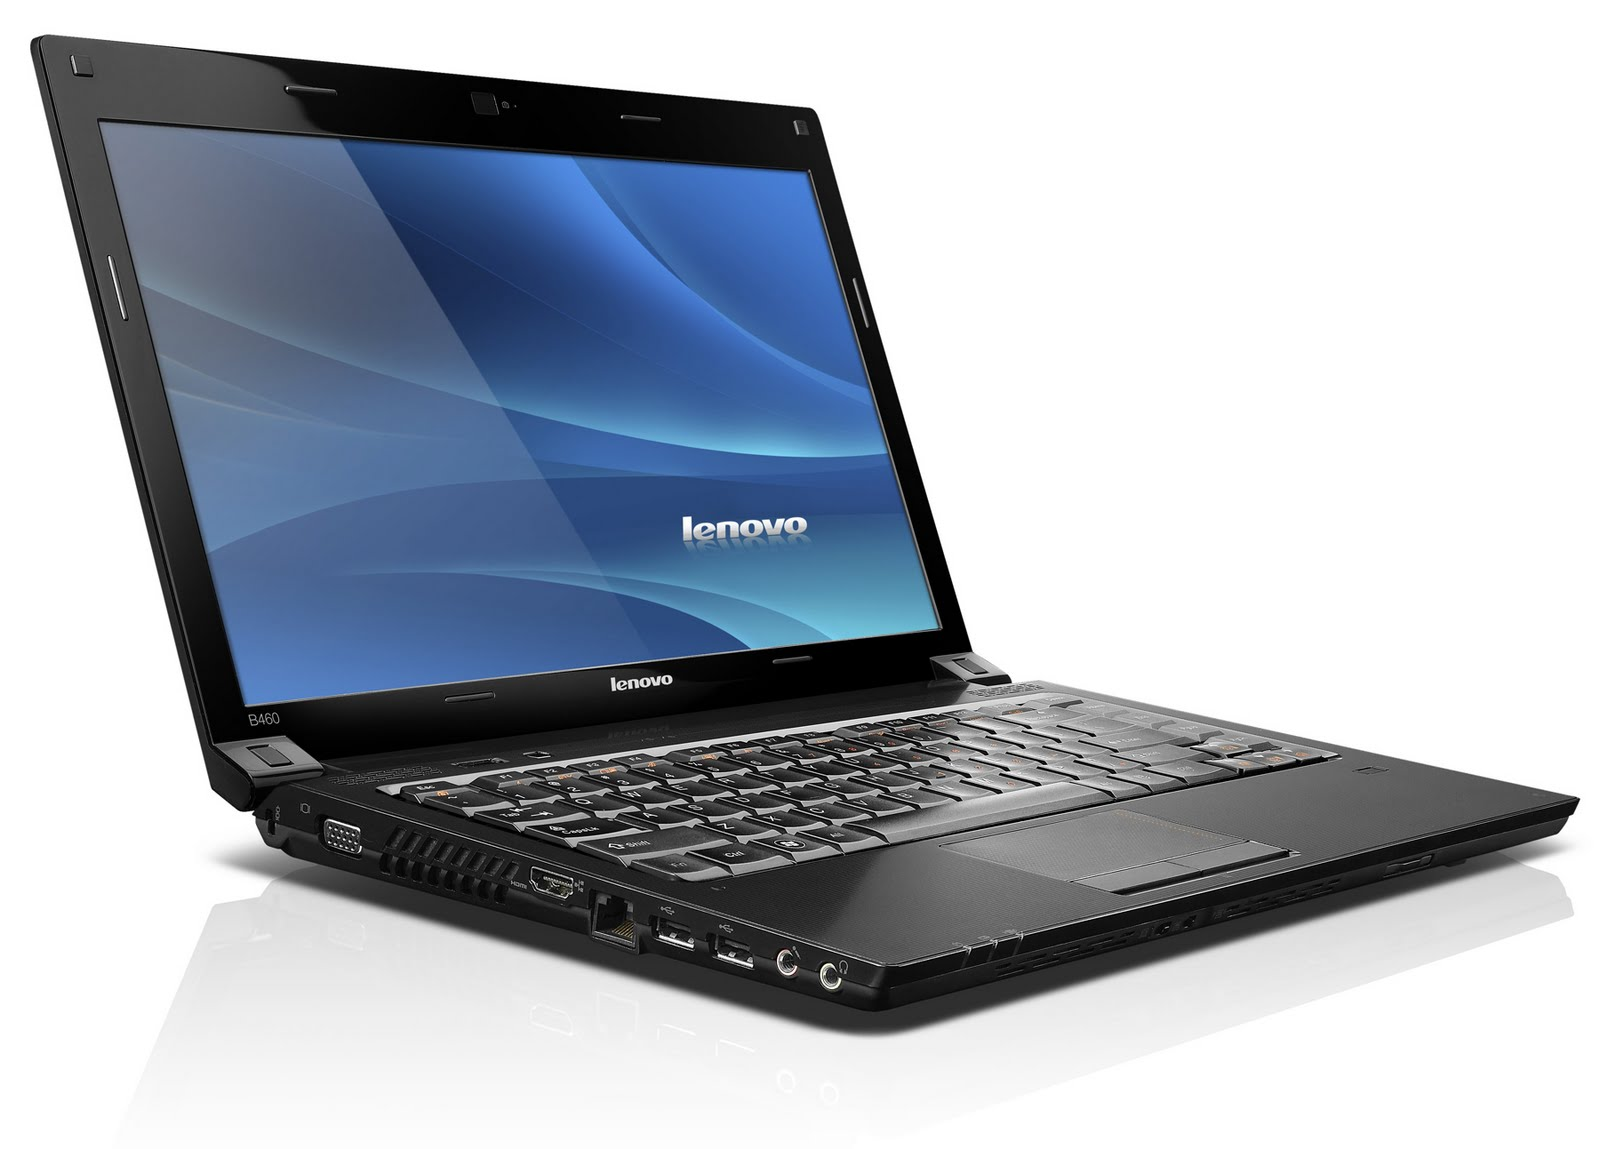 Download Lenovo Ideapad G460 Drivers For Windows 8, 7, Vista